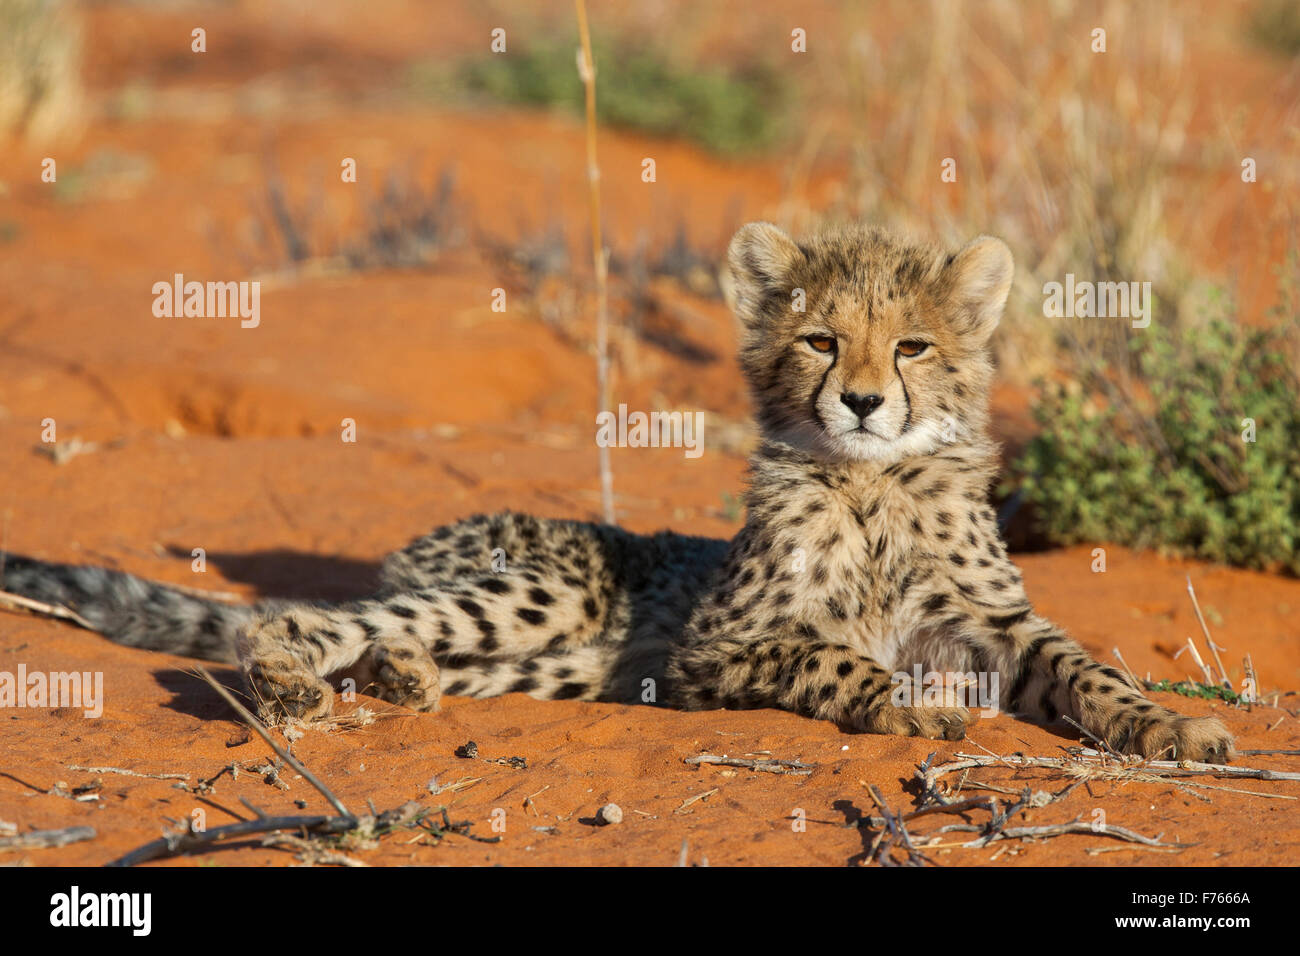 Cheetah cub lying down with its head up on a sand dune in the Kgalagadi Transfrontier Park Stock Photo